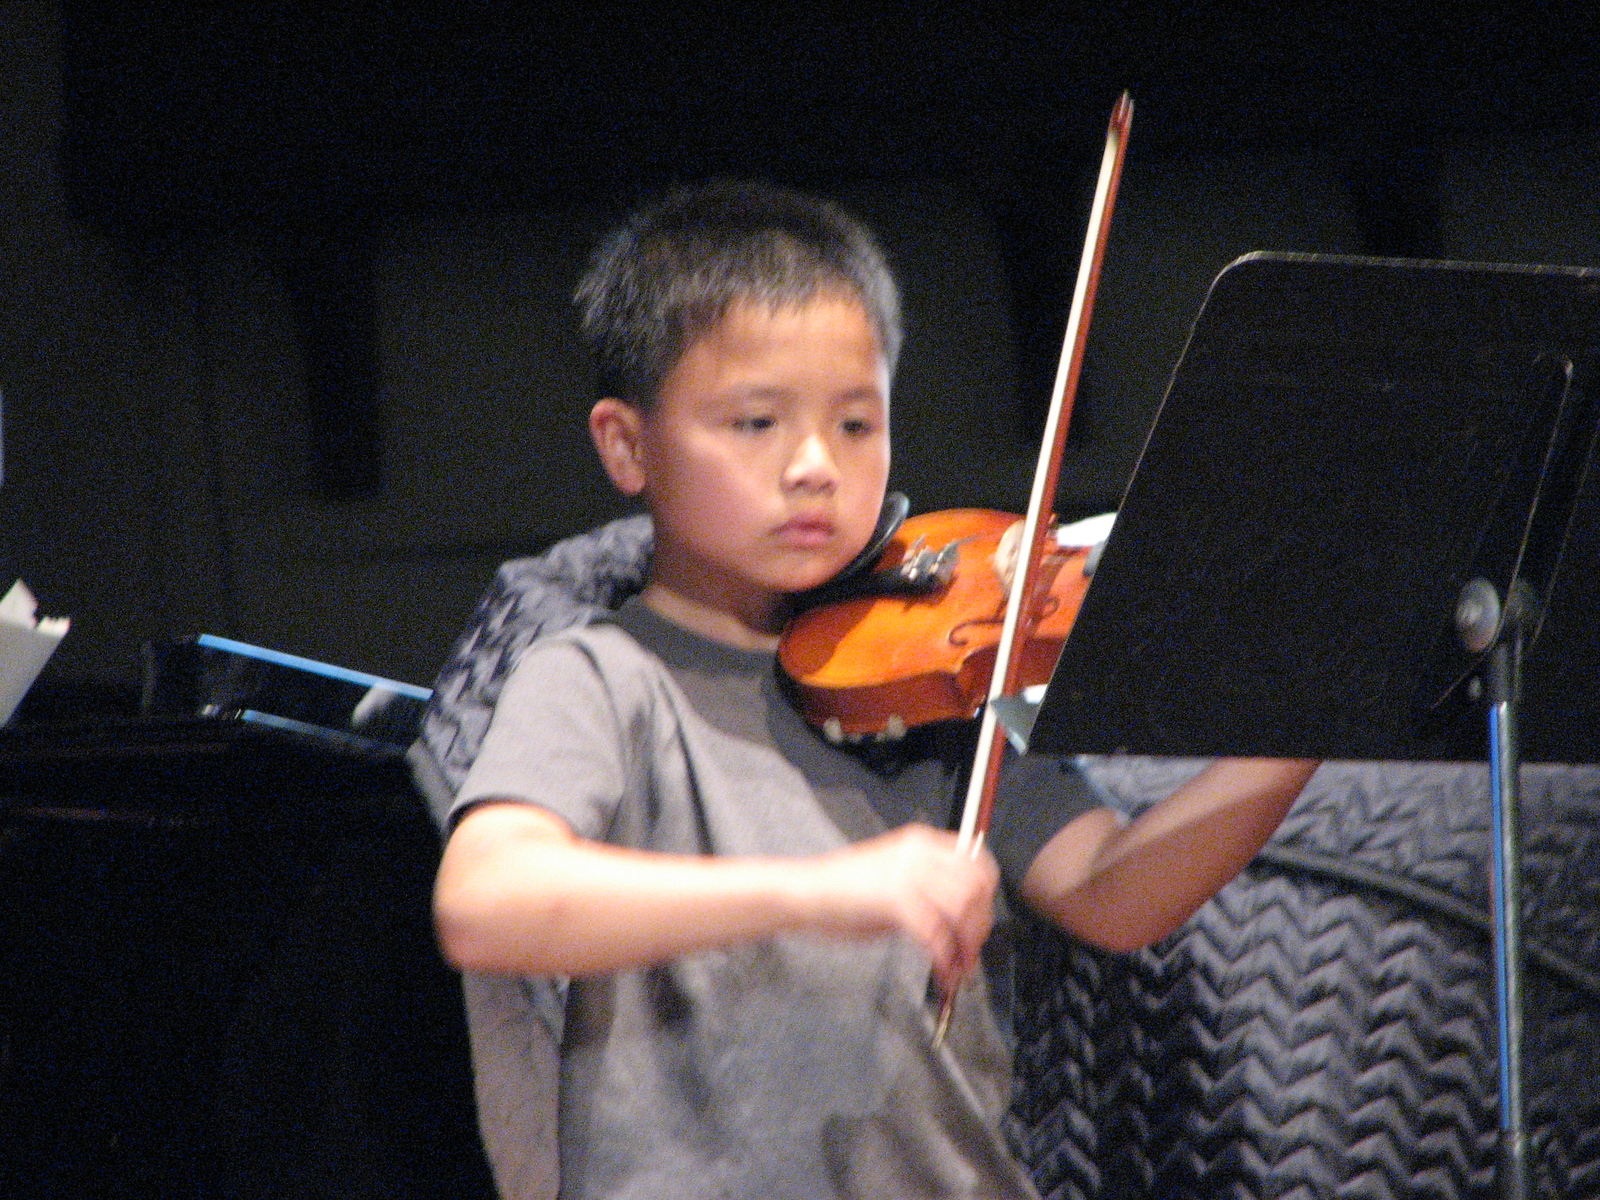 2007 05 18 Fri - Rehearsal - Lil' Samuel Kwong playing violin